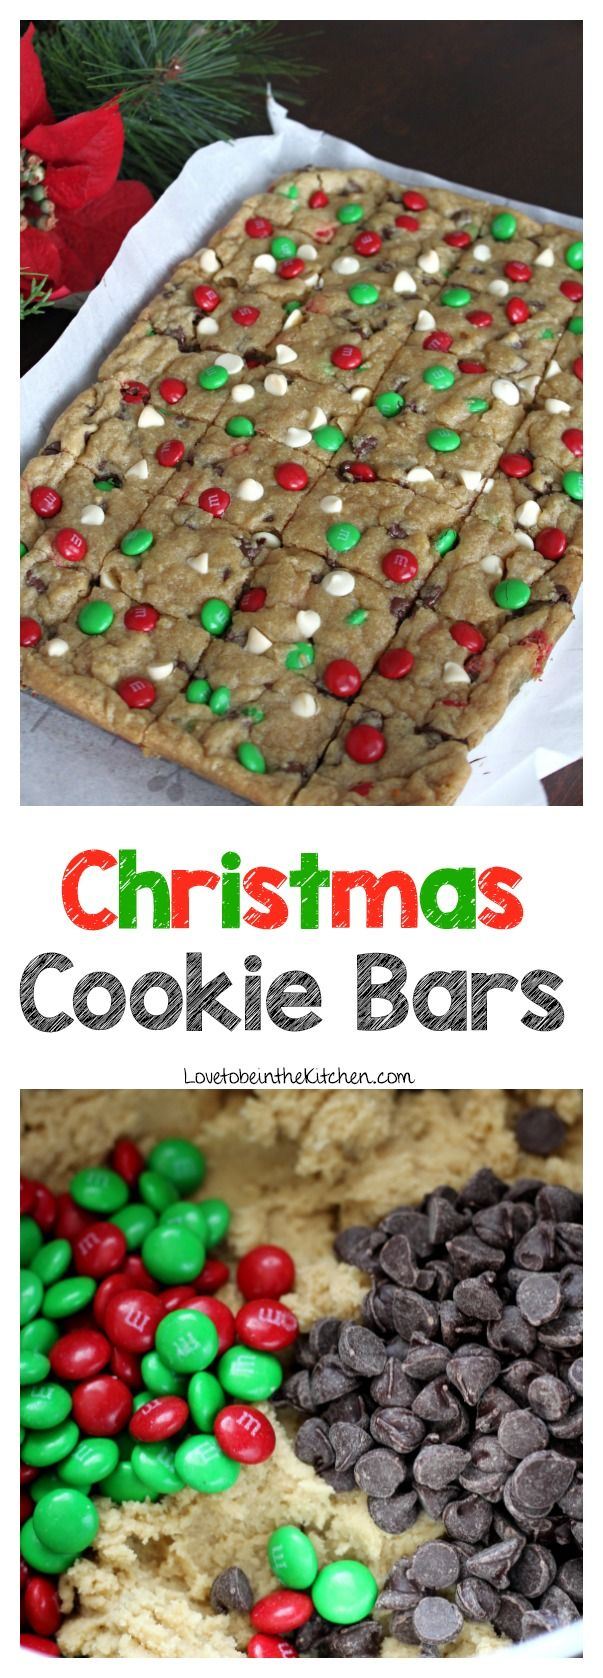 Christmas Cookie Bars Love To Be In The Kitchen Recipe Christmas Cookie Bars Cookies Recipes Christmas Chocolate Chip Cookie Bars